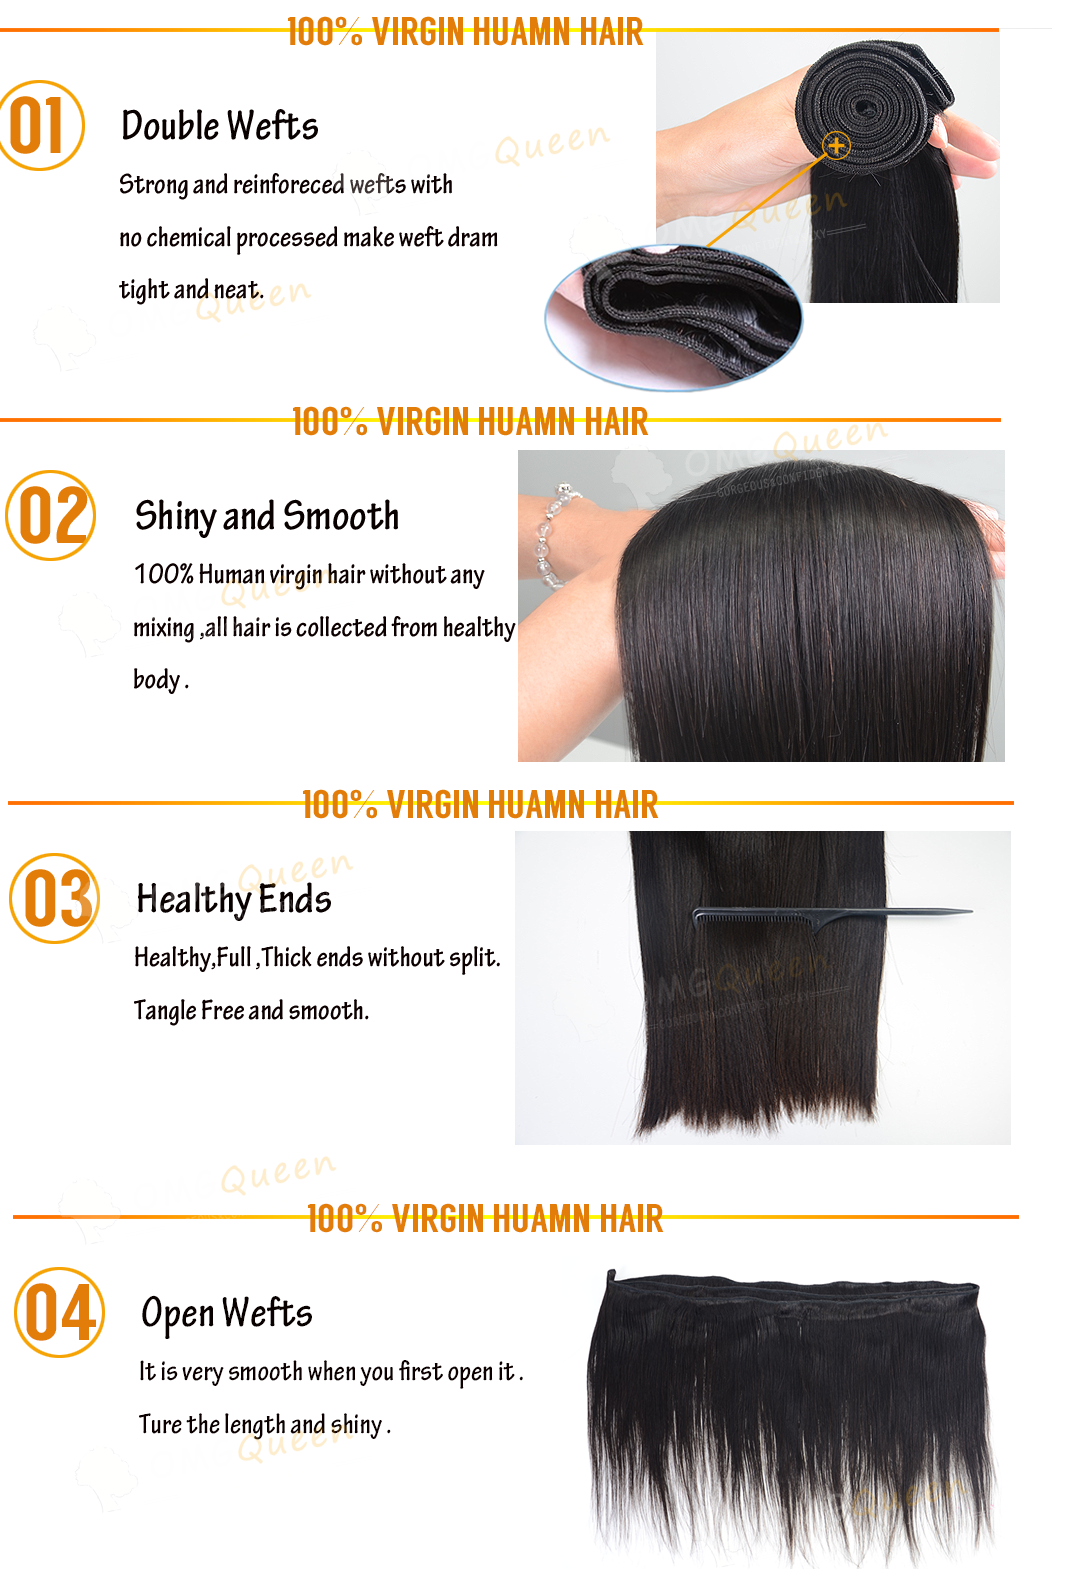 100% Vigin Human Hair